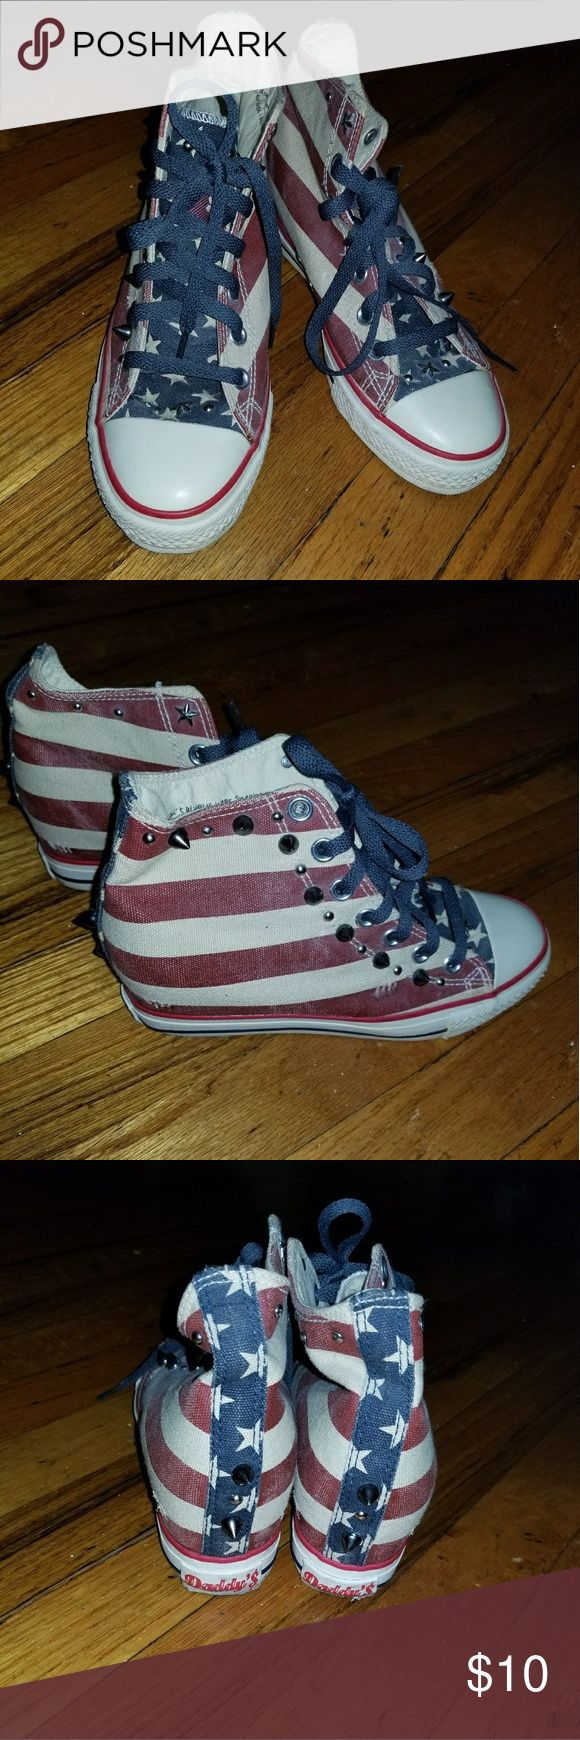 Skechers Daddy's $ Flag Print/Stud Wedge Sneakers Skechers Daddy's Money Flag Print Studded Wedge Sneakers for  Teen, Women or Kids  Size 7 Pre-Owned; normal wear and tear (worn only a couple of times)  Wearable, acceptable condition! Skechers Shoes Sneakers